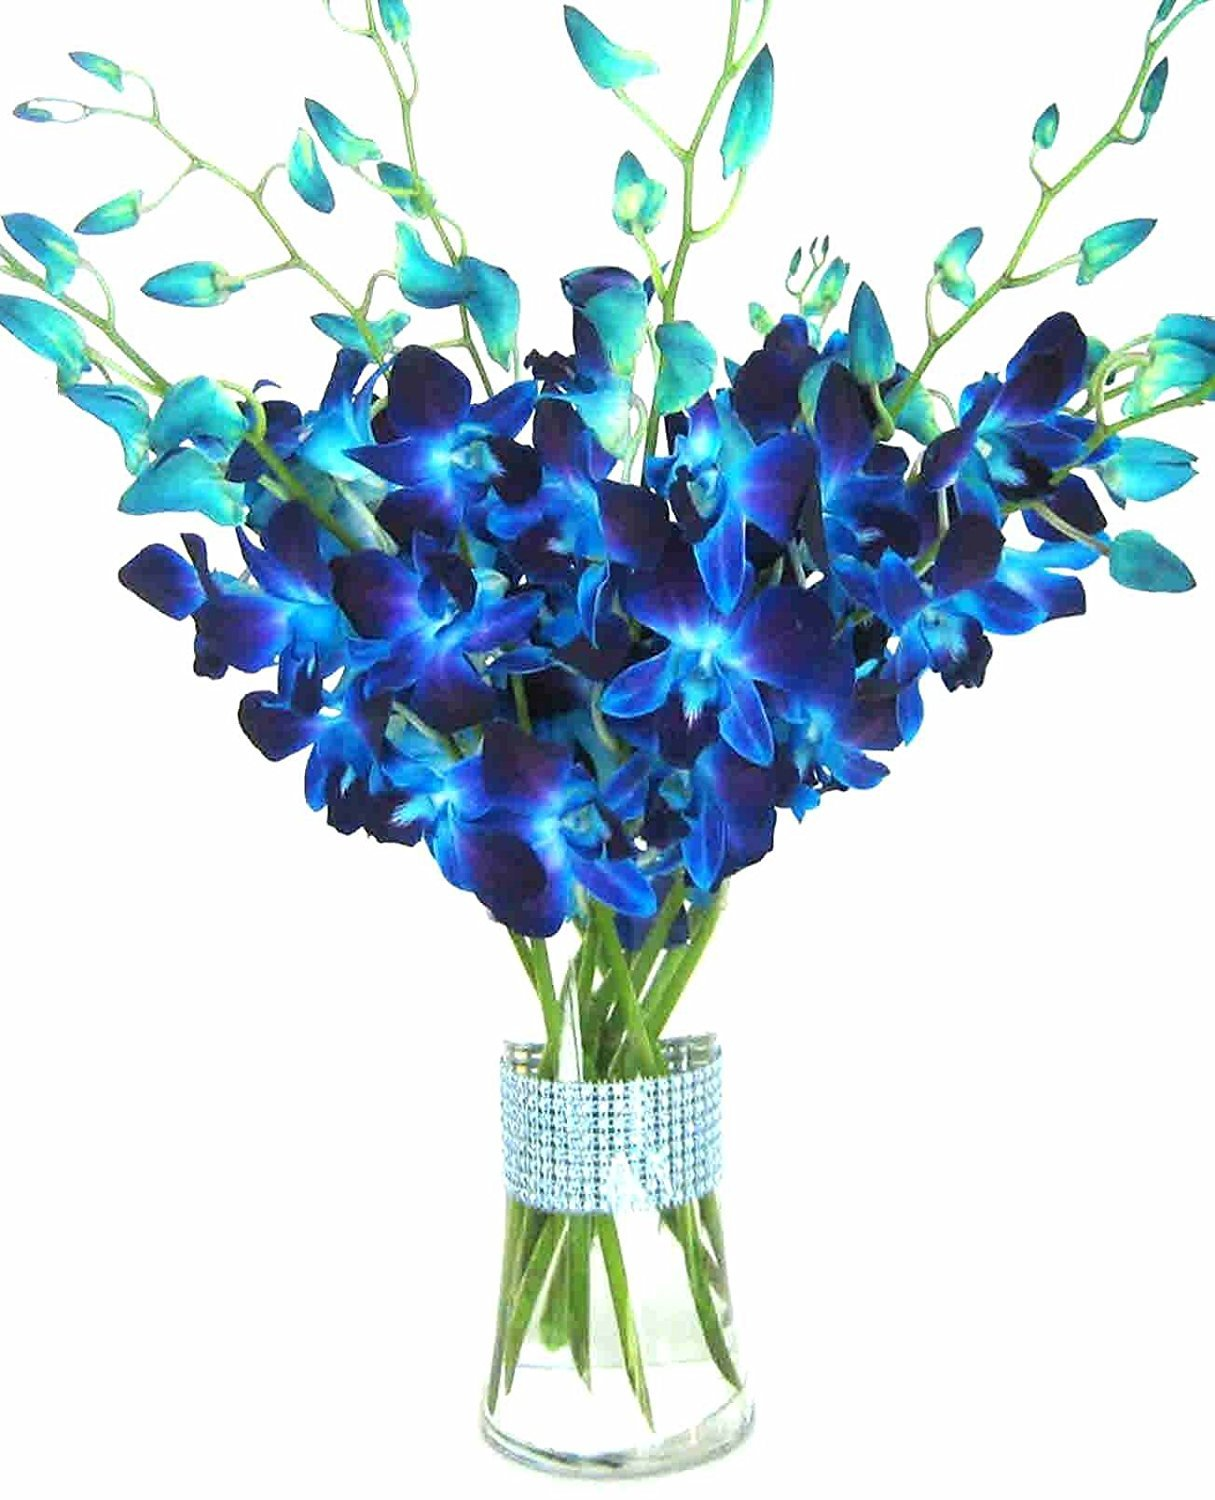 eflowerwholesale - Premium Cut Blue Orchids (10 stems Orchid with Rhinestone Mesh Ribbon Vase) by eflowerwholesale